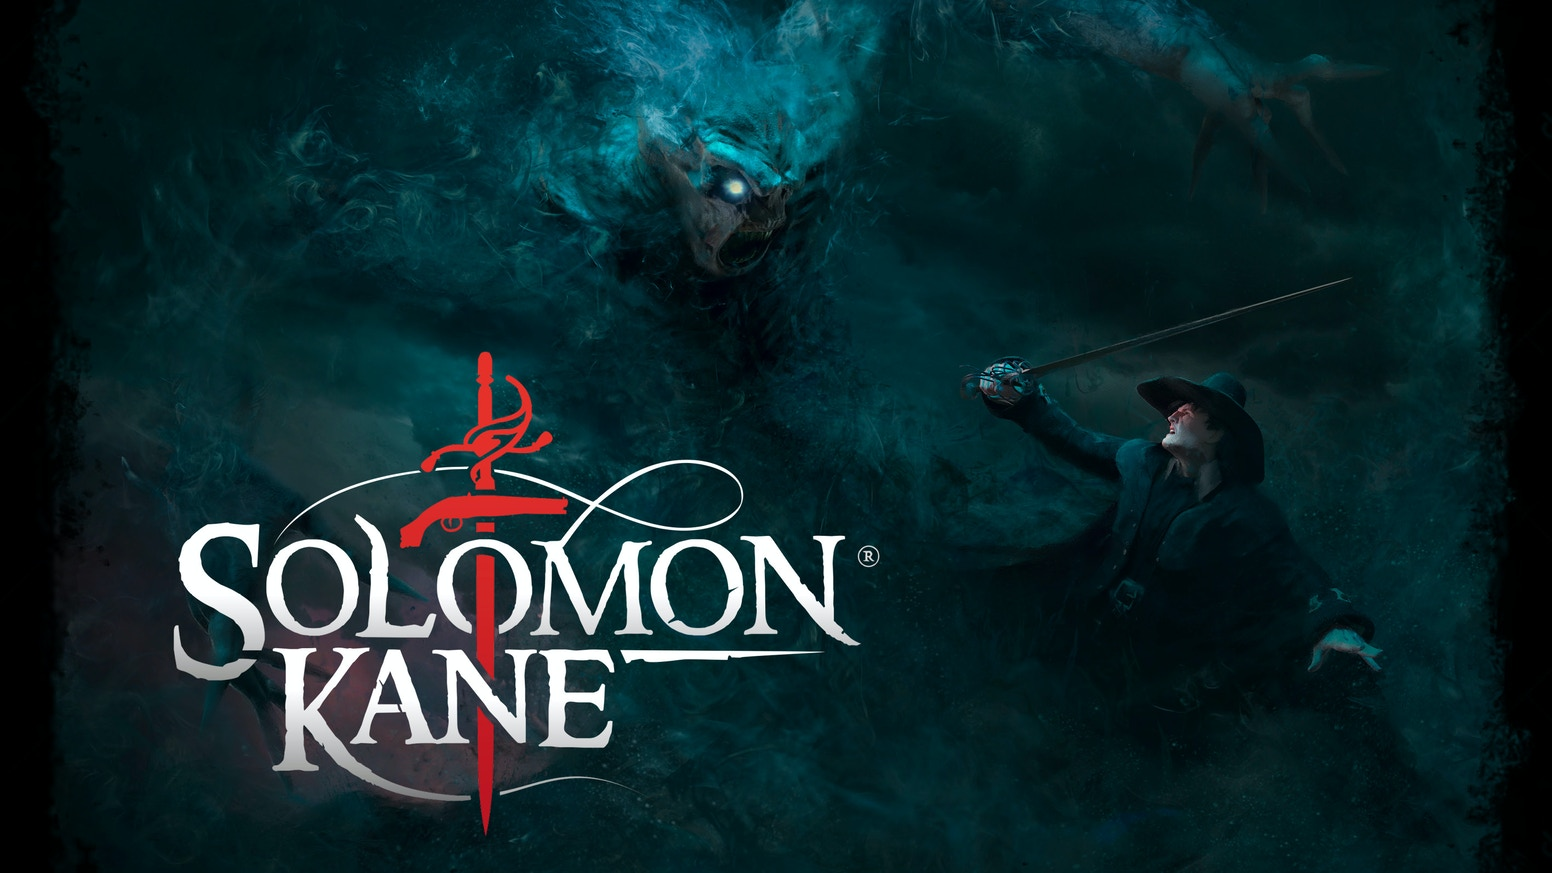 Solomon Kane is the top crowdfunding project launched today. Solomon Kane raised over $1173363 from 7161 backers. Other top projects include Capsule360: World's most versatile motion box ever created!, Instant Magny 35 - An Instant Back for 135 SLR & Rangefinder, Getaway Driver...